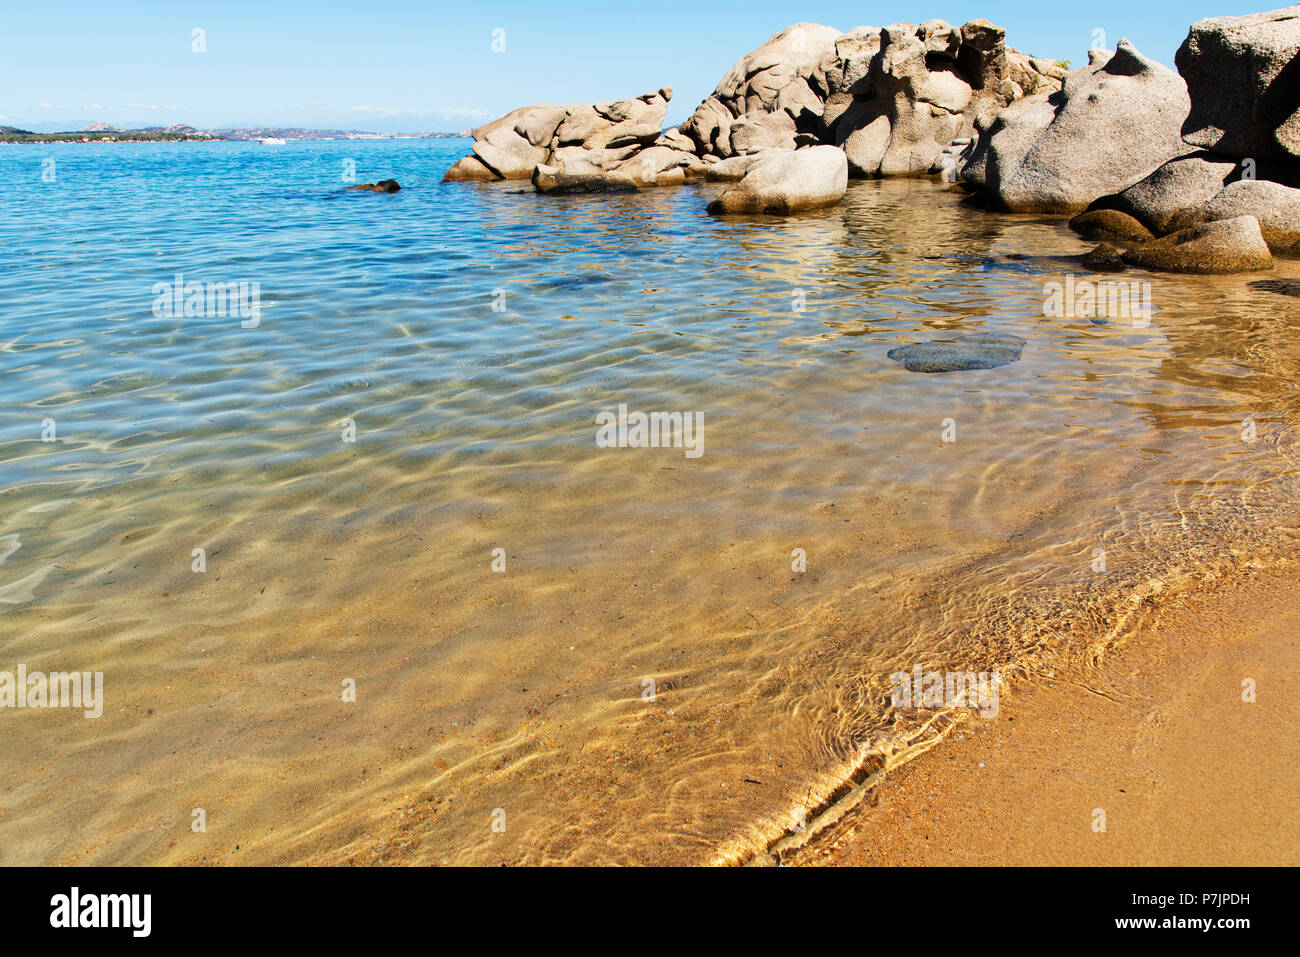 a view of the clear water of the Mediterranean sea and the peculiar rock formations in Cala Ginepro beach, in the famous Costa Smeralda, Sardinia, Ita - Stock Image